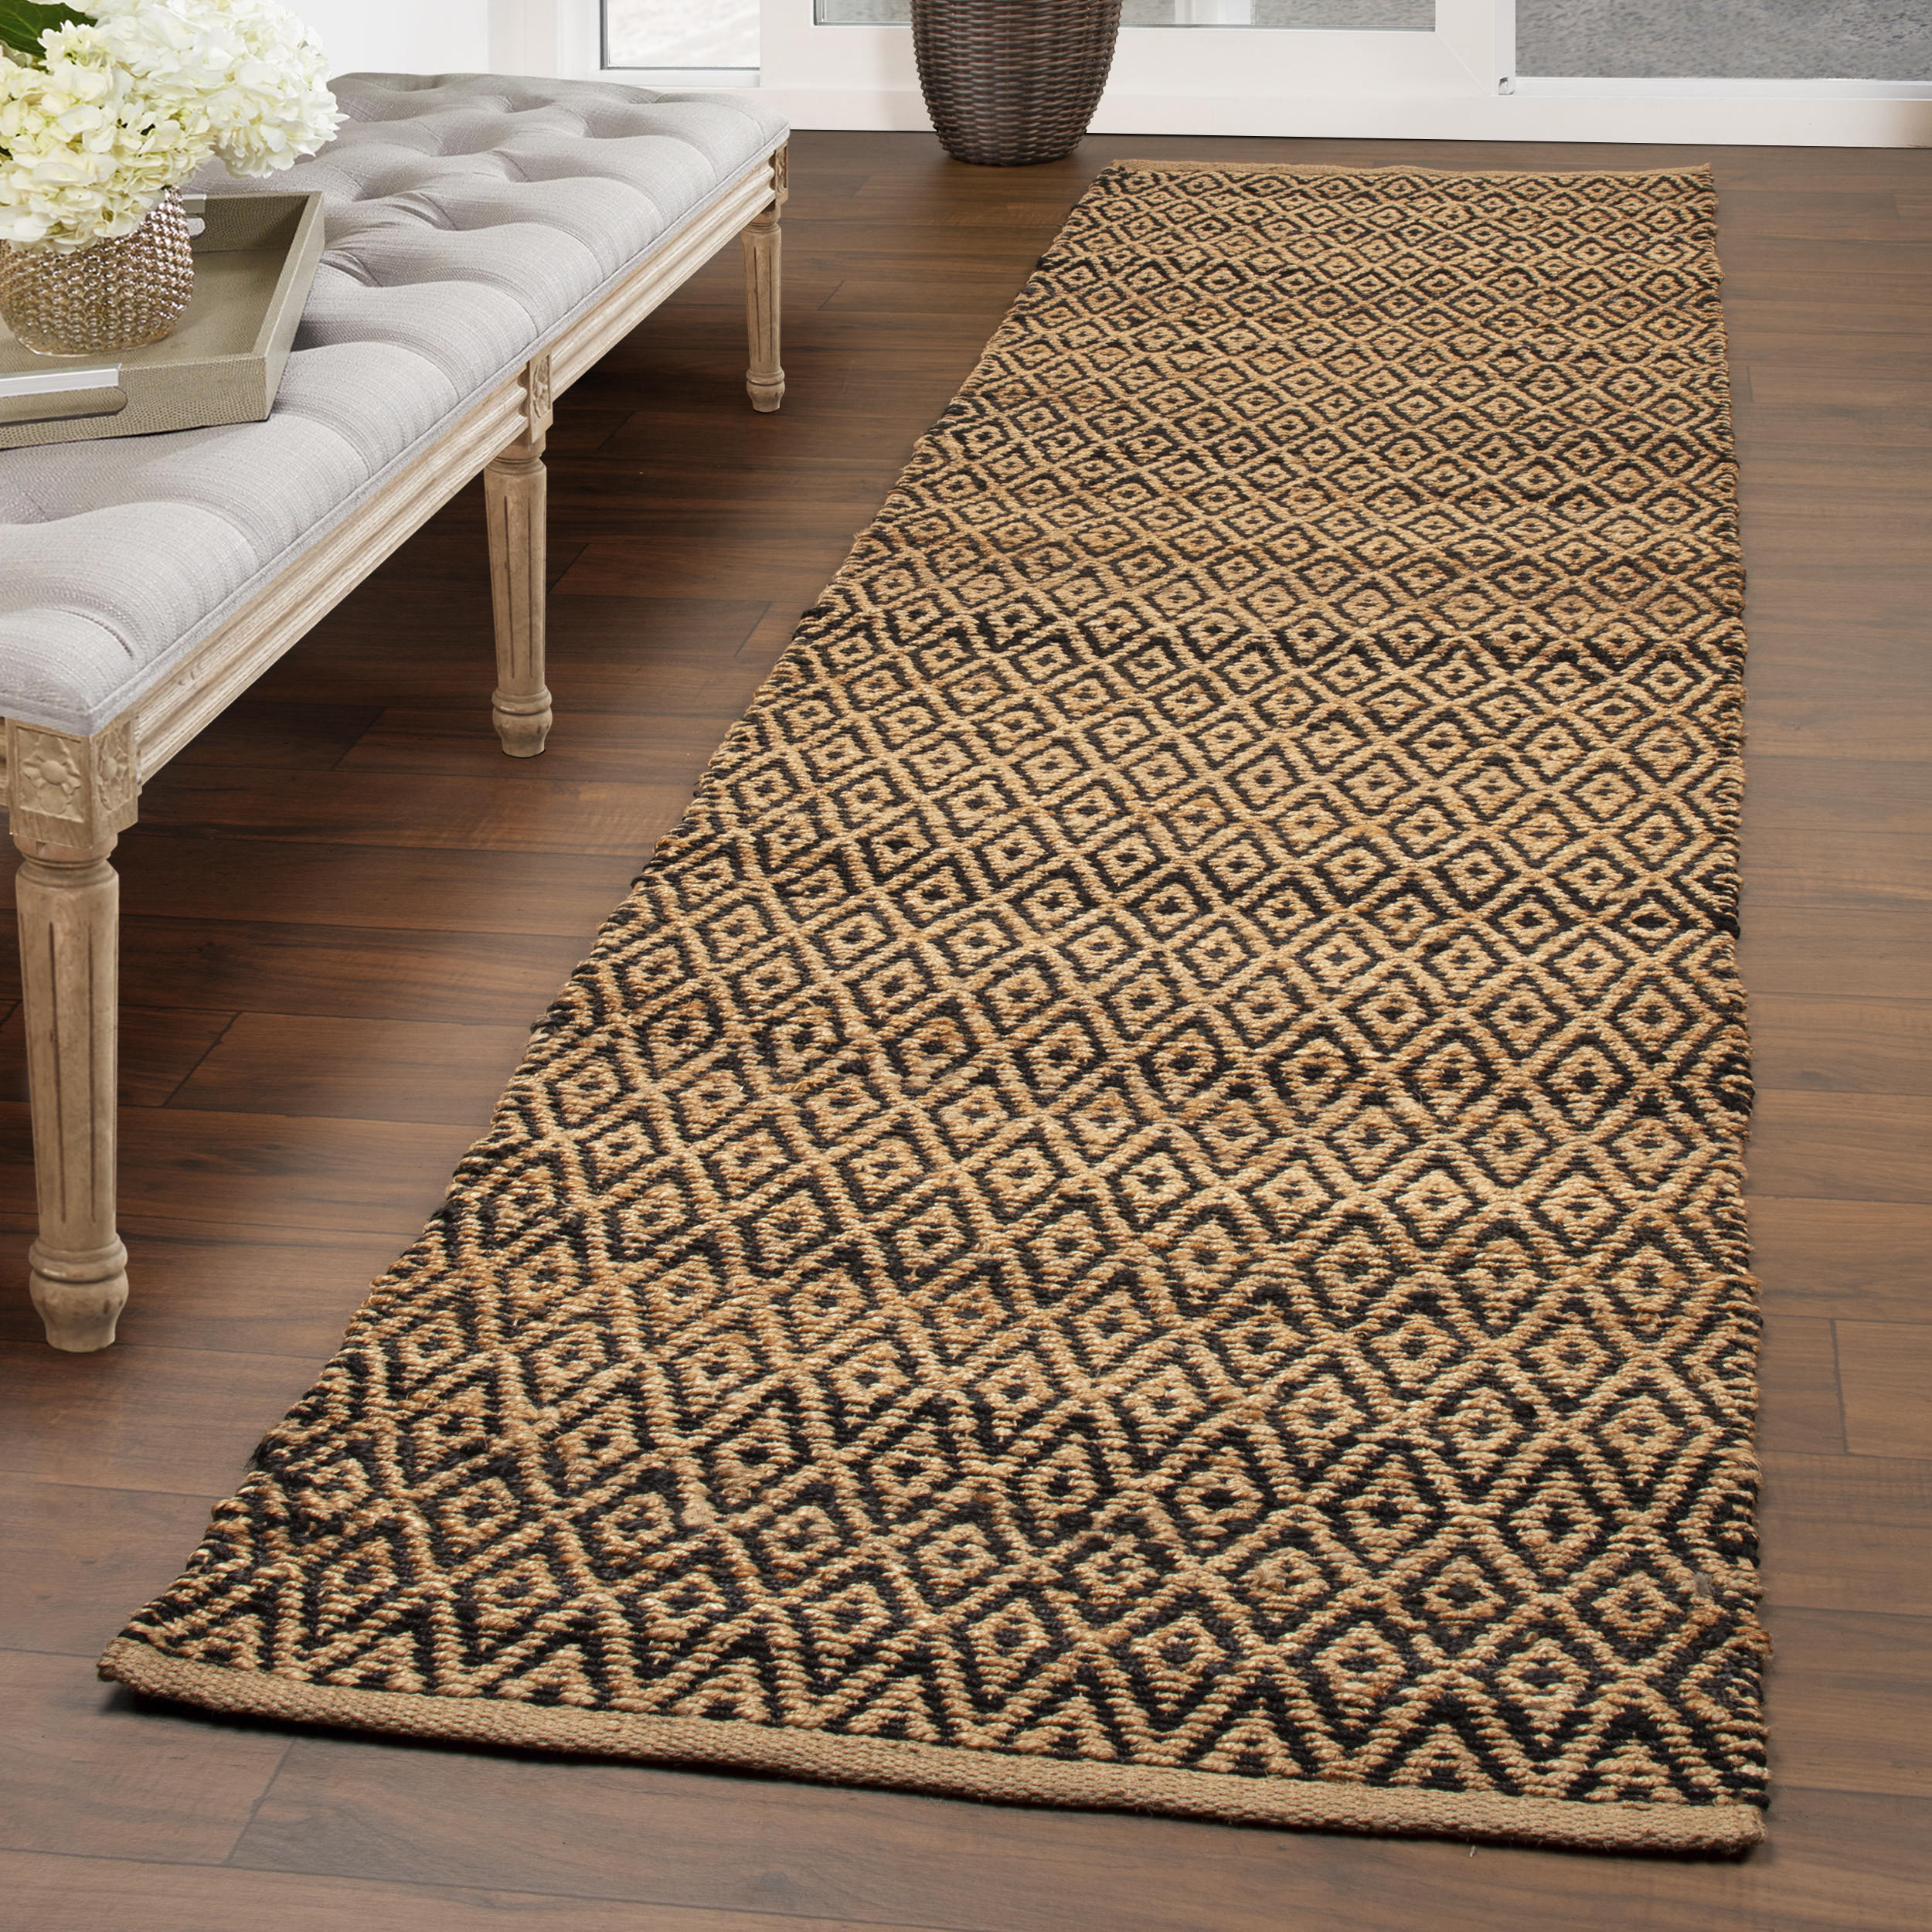 Superior Natural Diamond Collection Hand Woven Jute Rug - Black